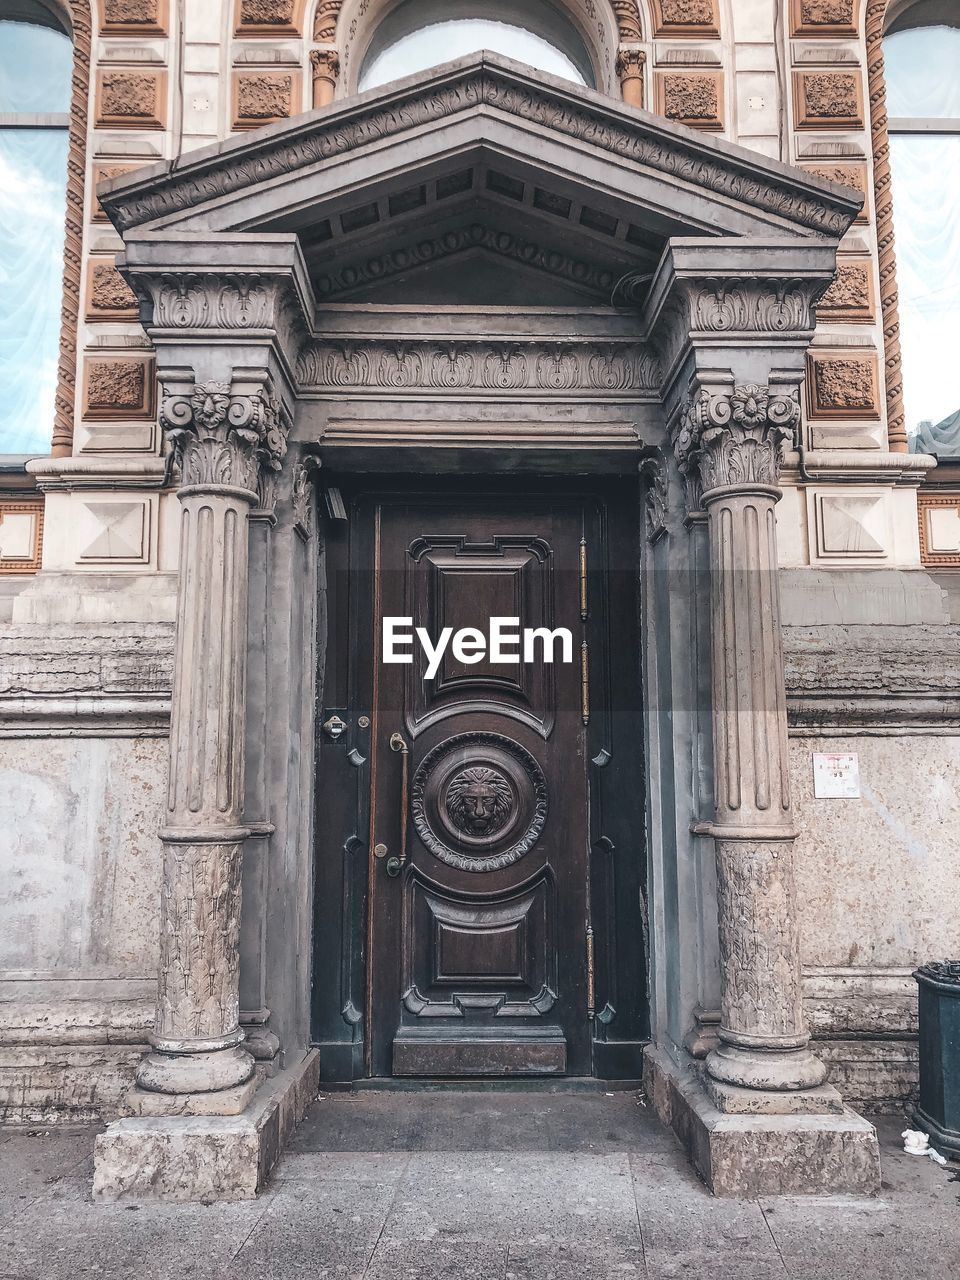 architecture, built structure, building exterior, building, day, art and craft, history, the past, no people, craft, entrance, city, carving - craft product, outdoors, architectural column, door, ornate, residential district, design, facade